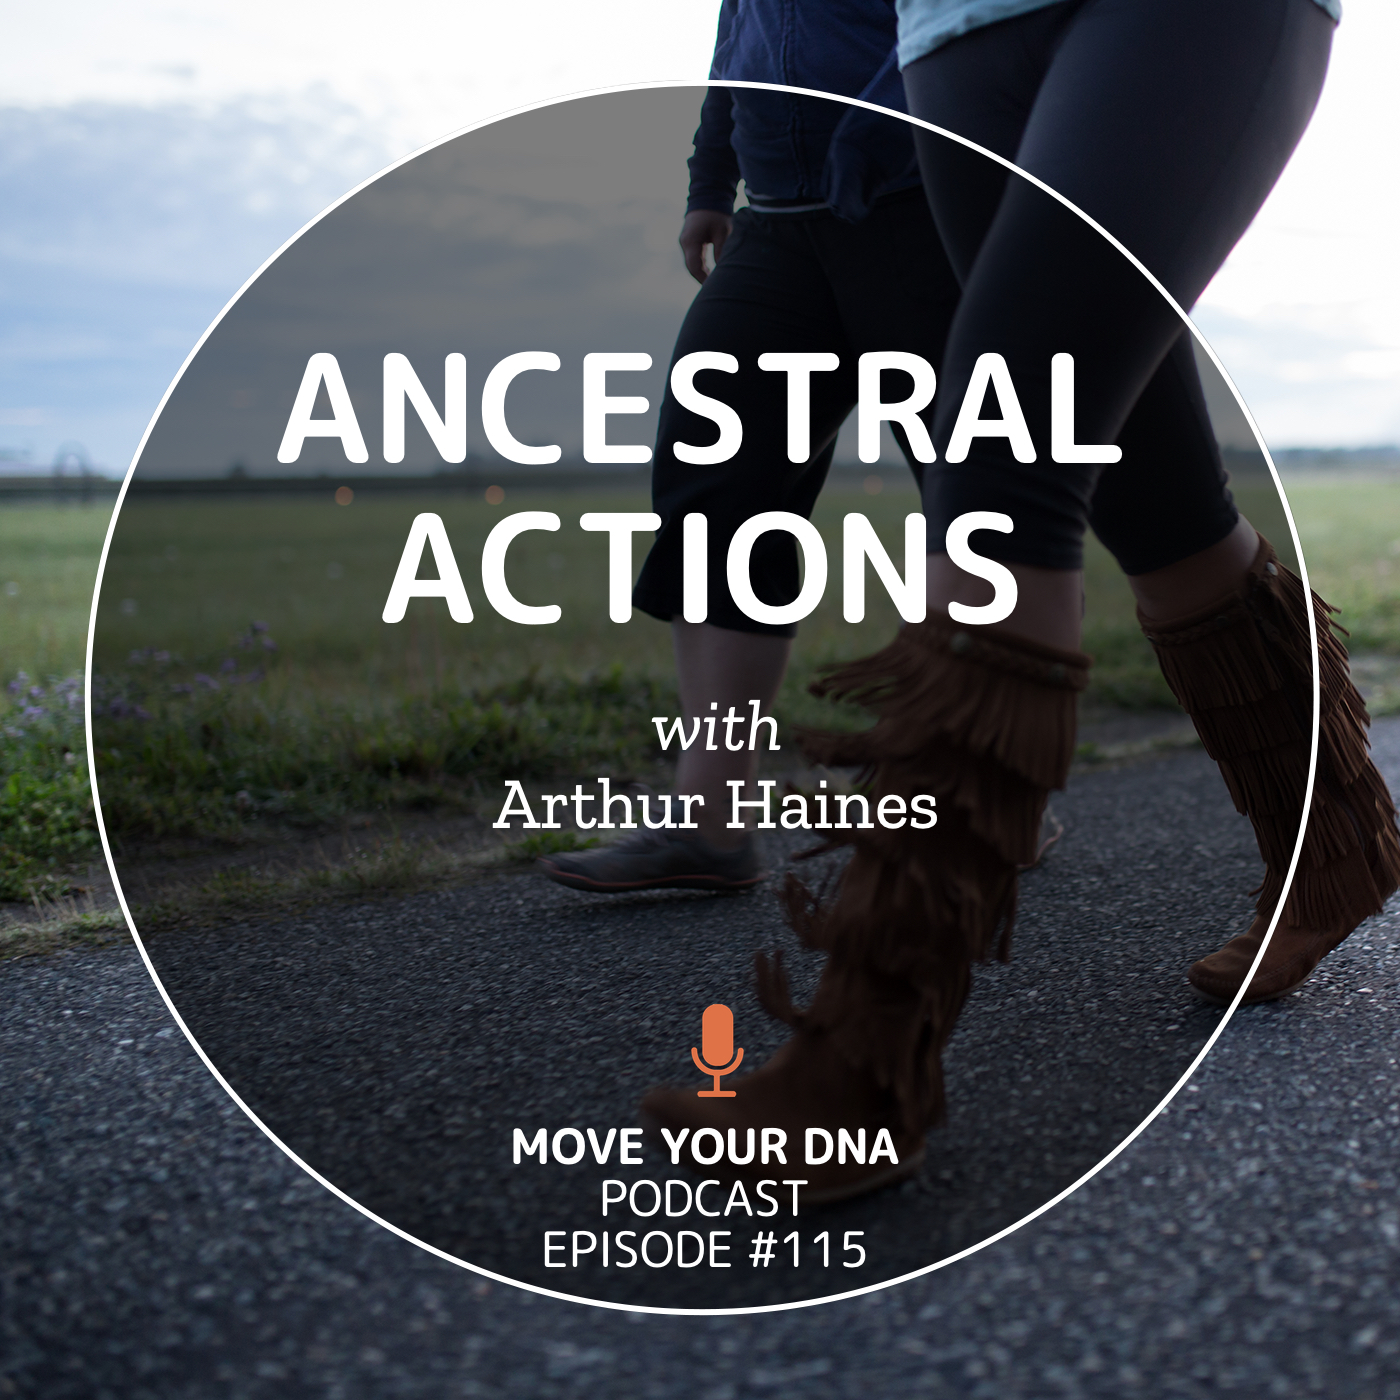 move your dna podcast episodes 115 haines.jpg